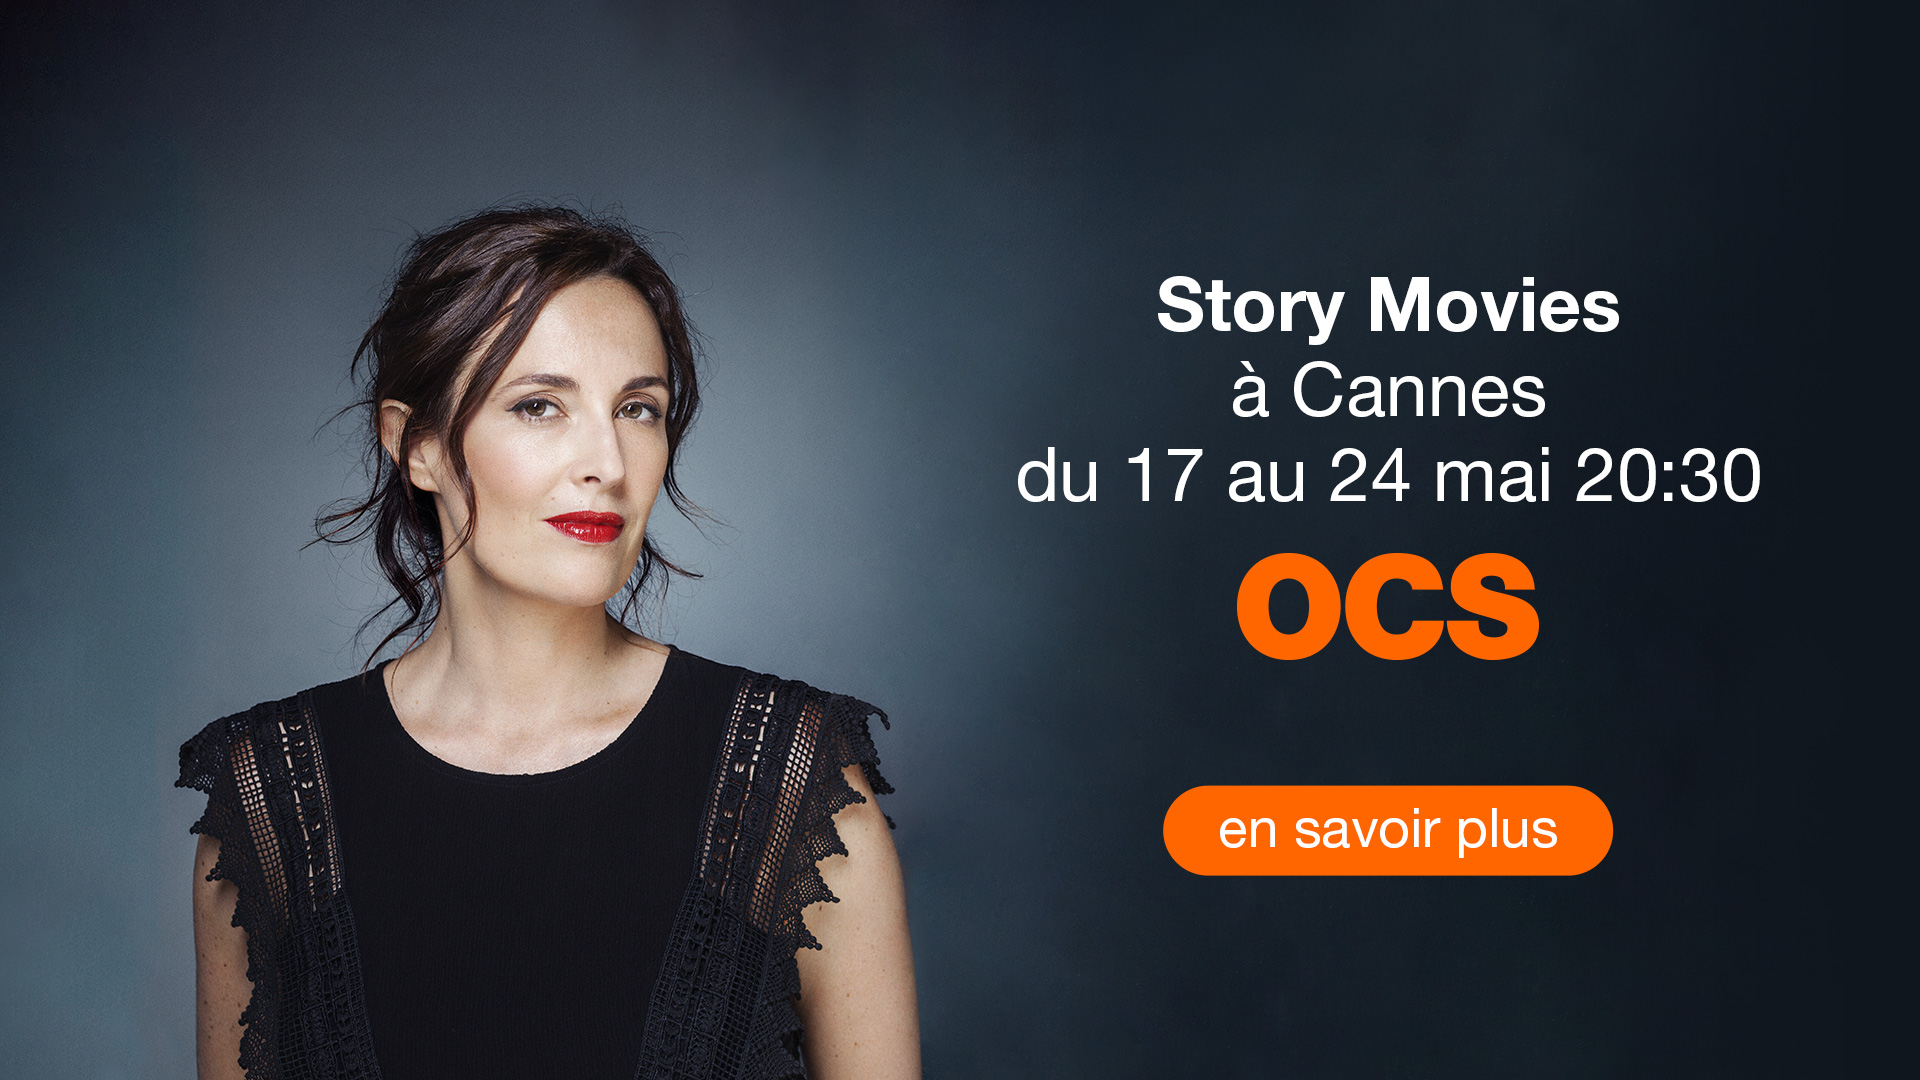 STORY MOVIES CANNES